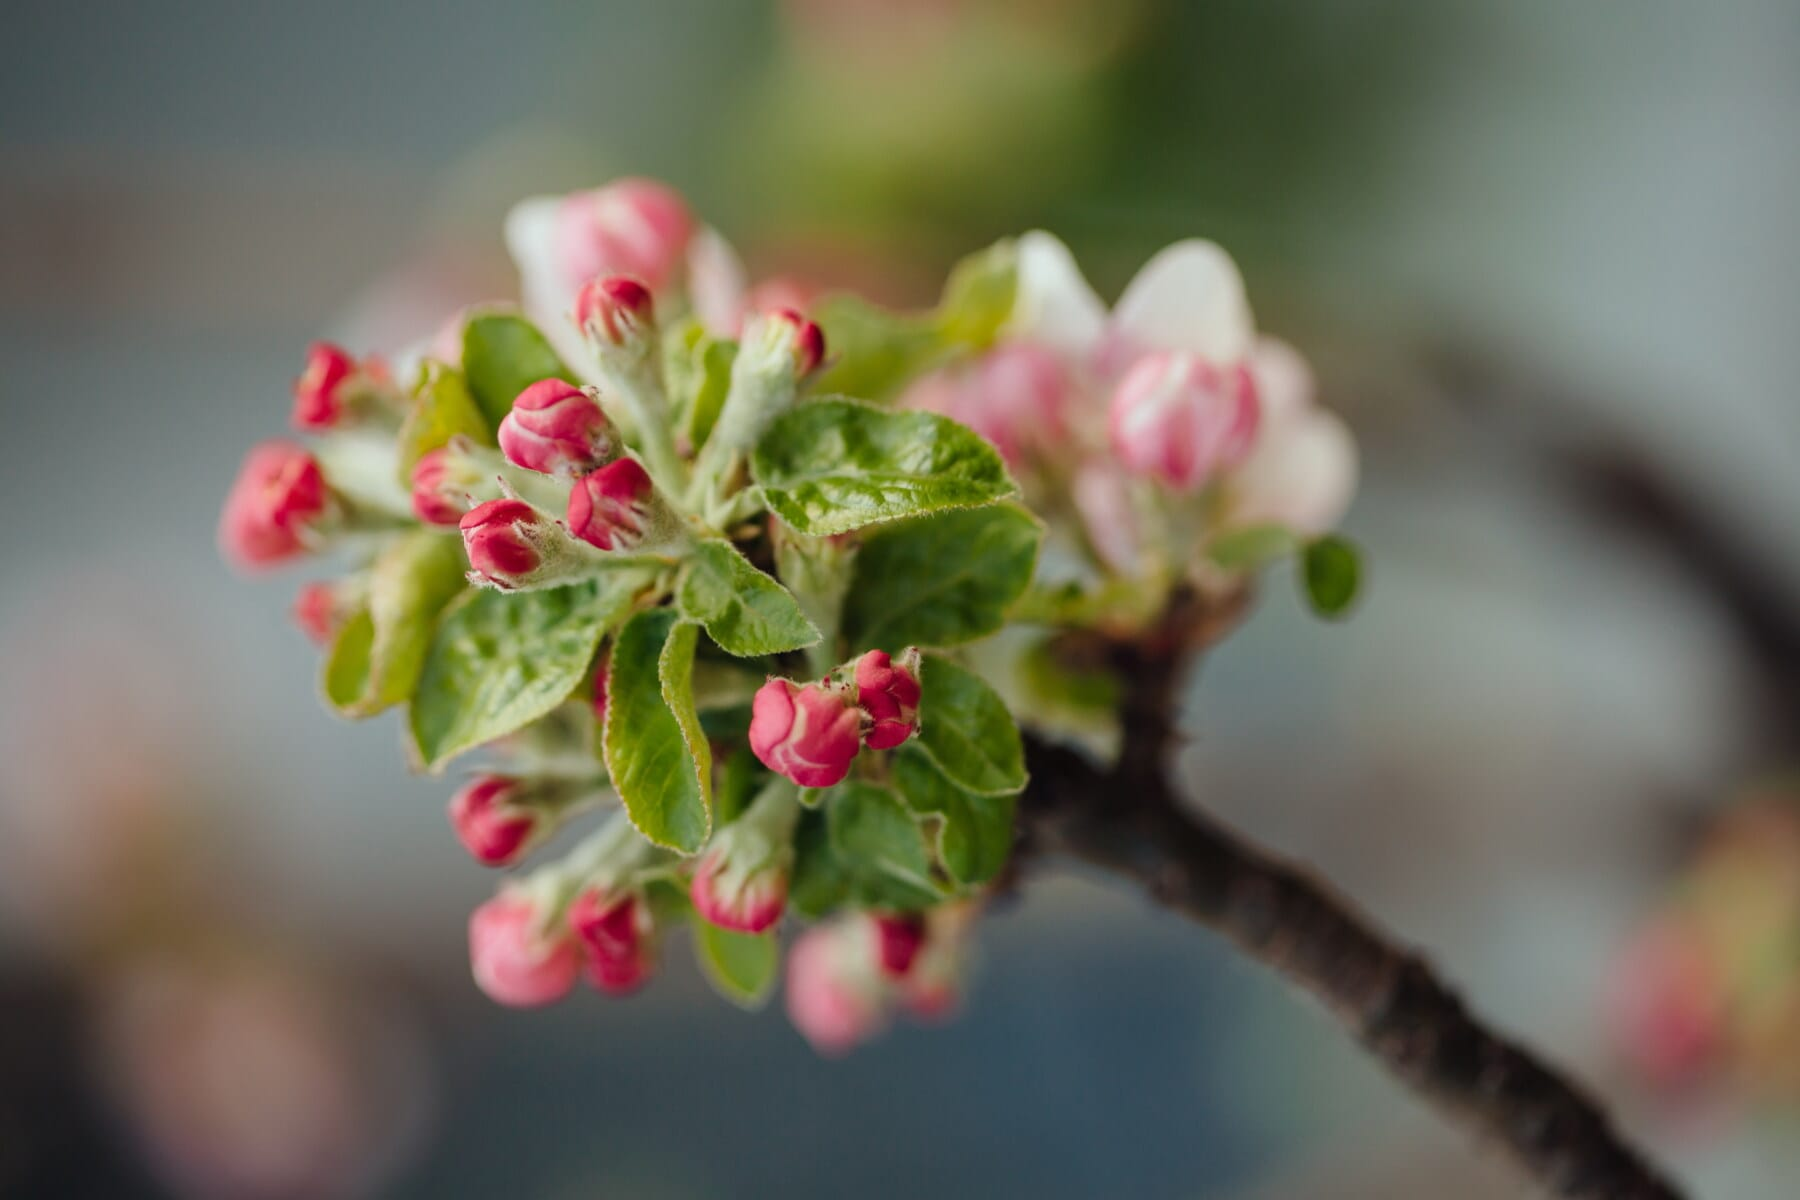 orchard, fruit tree, apple tree, flower bud, side view, tree, nature, branch, leaf, flower